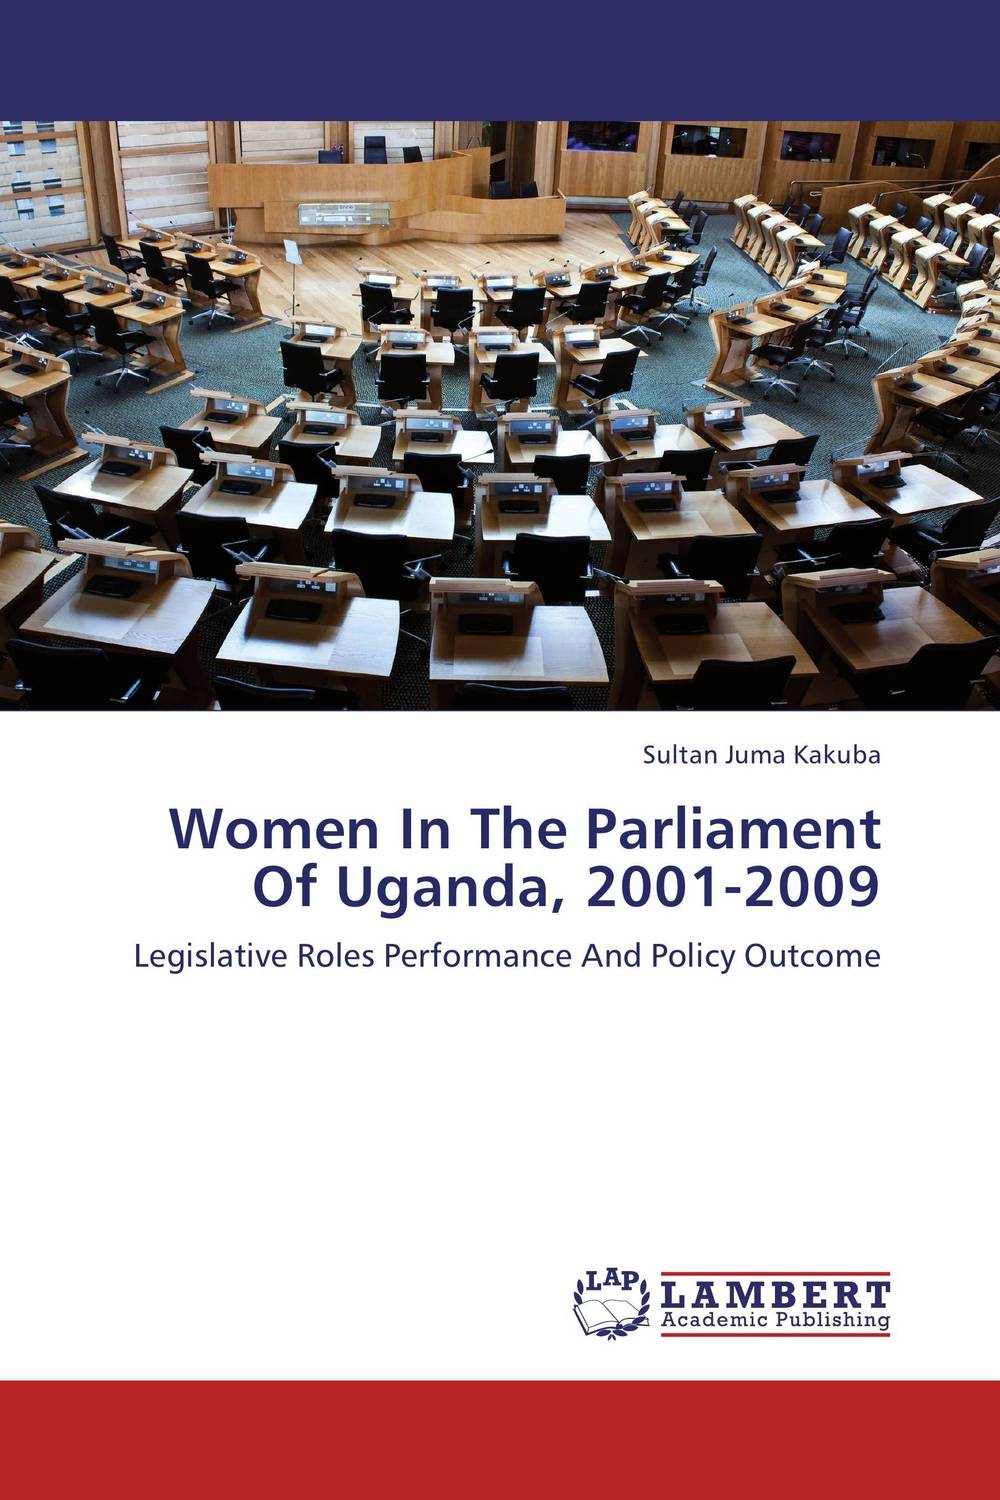 increase in the parliamentary representation of women in south africa Rates of women's representation (12 women out of the total 29) countries with the lowest rates include libyan arab jamahiriya, with 0% representation of women in an 18-member cabinet only three countries have surpassed the goal of over 30% representation these are south africa, cape verde and lesotho burundi, uganda, botswana and gambia.